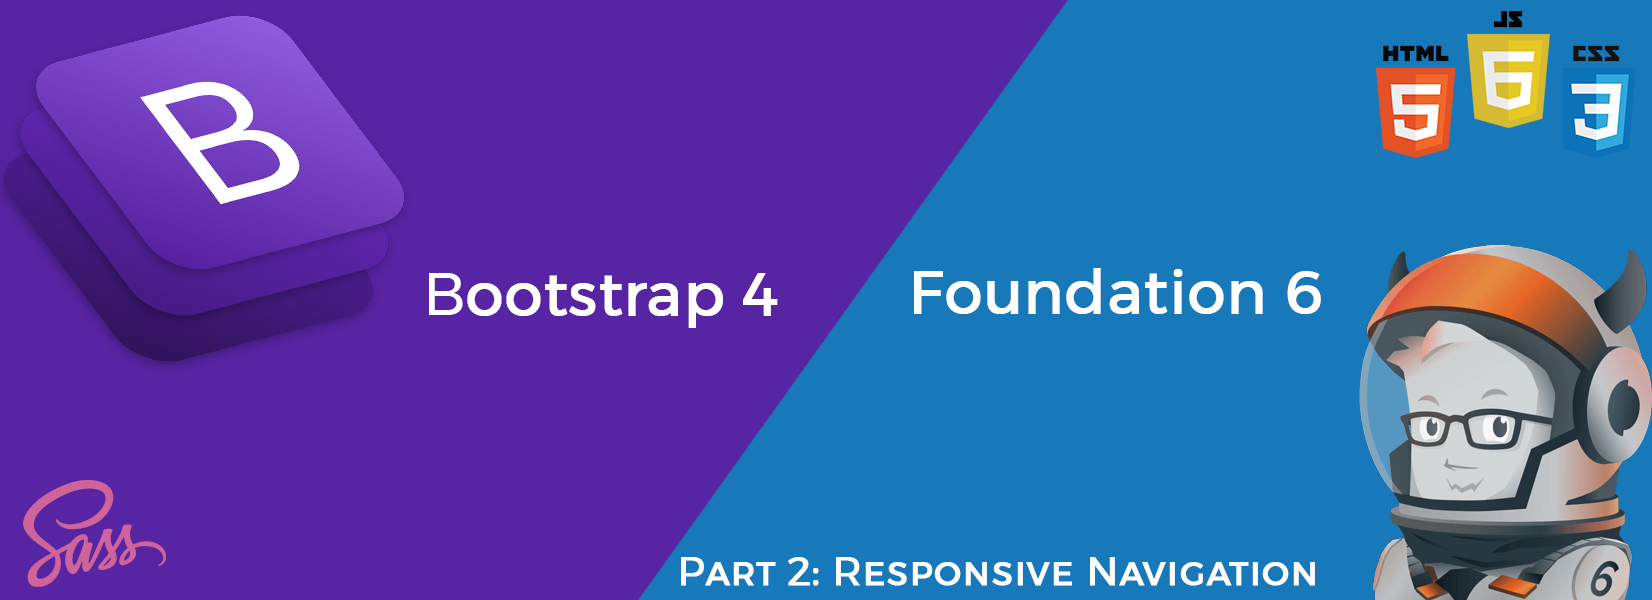 Part 2: Bootstrap 4 vs Foundation 6 4 — Responsive